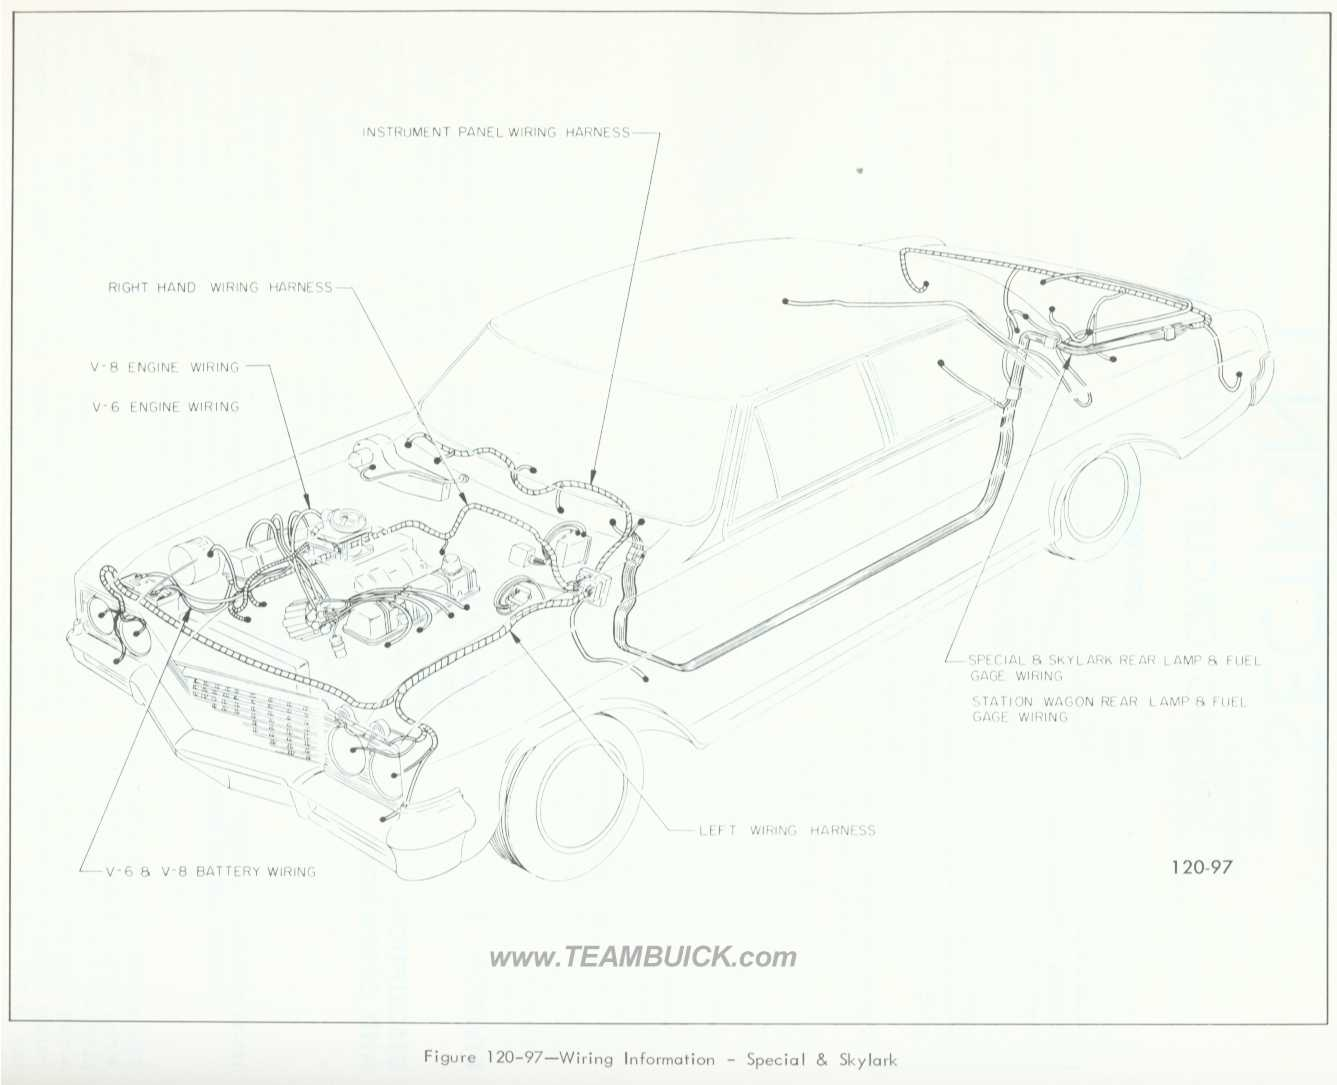 1966 Buick Riviera Wiring Diagram Trusted 88 Oldsmobile Diagrams The Old Special Free Download Car Automotive